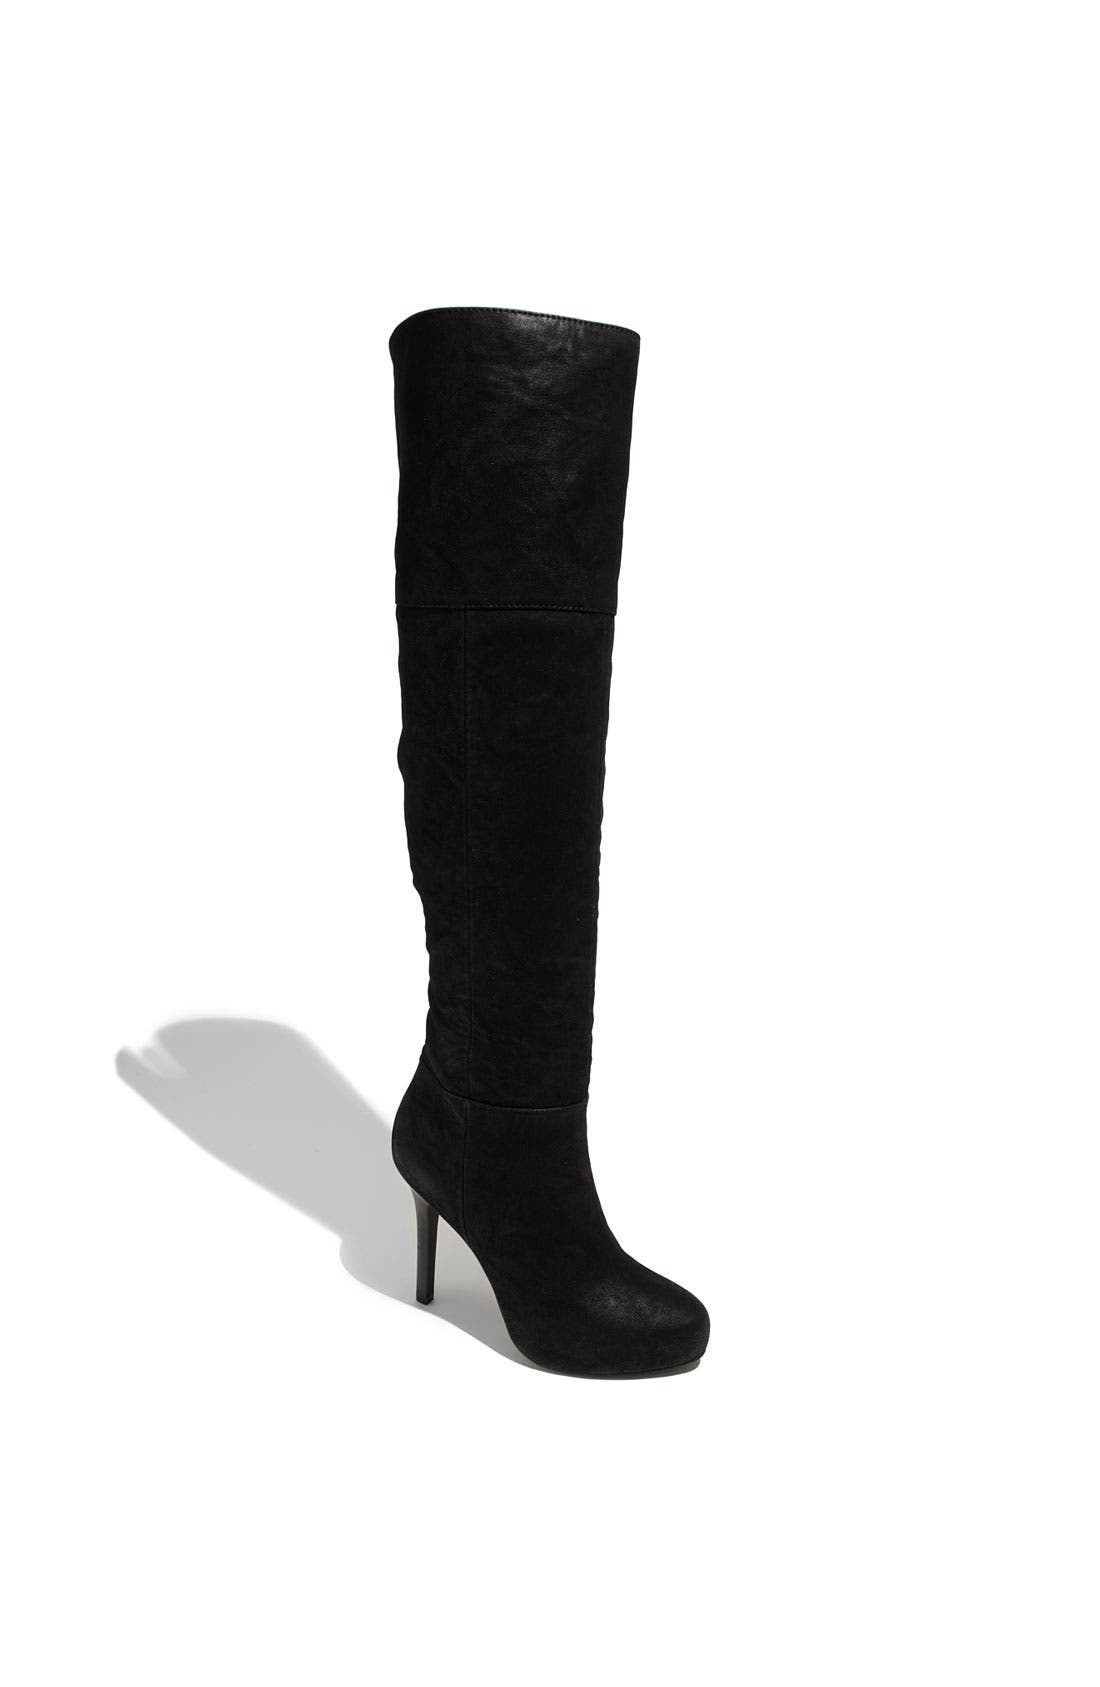 Alternate Image 1 Selected - REPORT 'Nichola' Over the Knee Boot